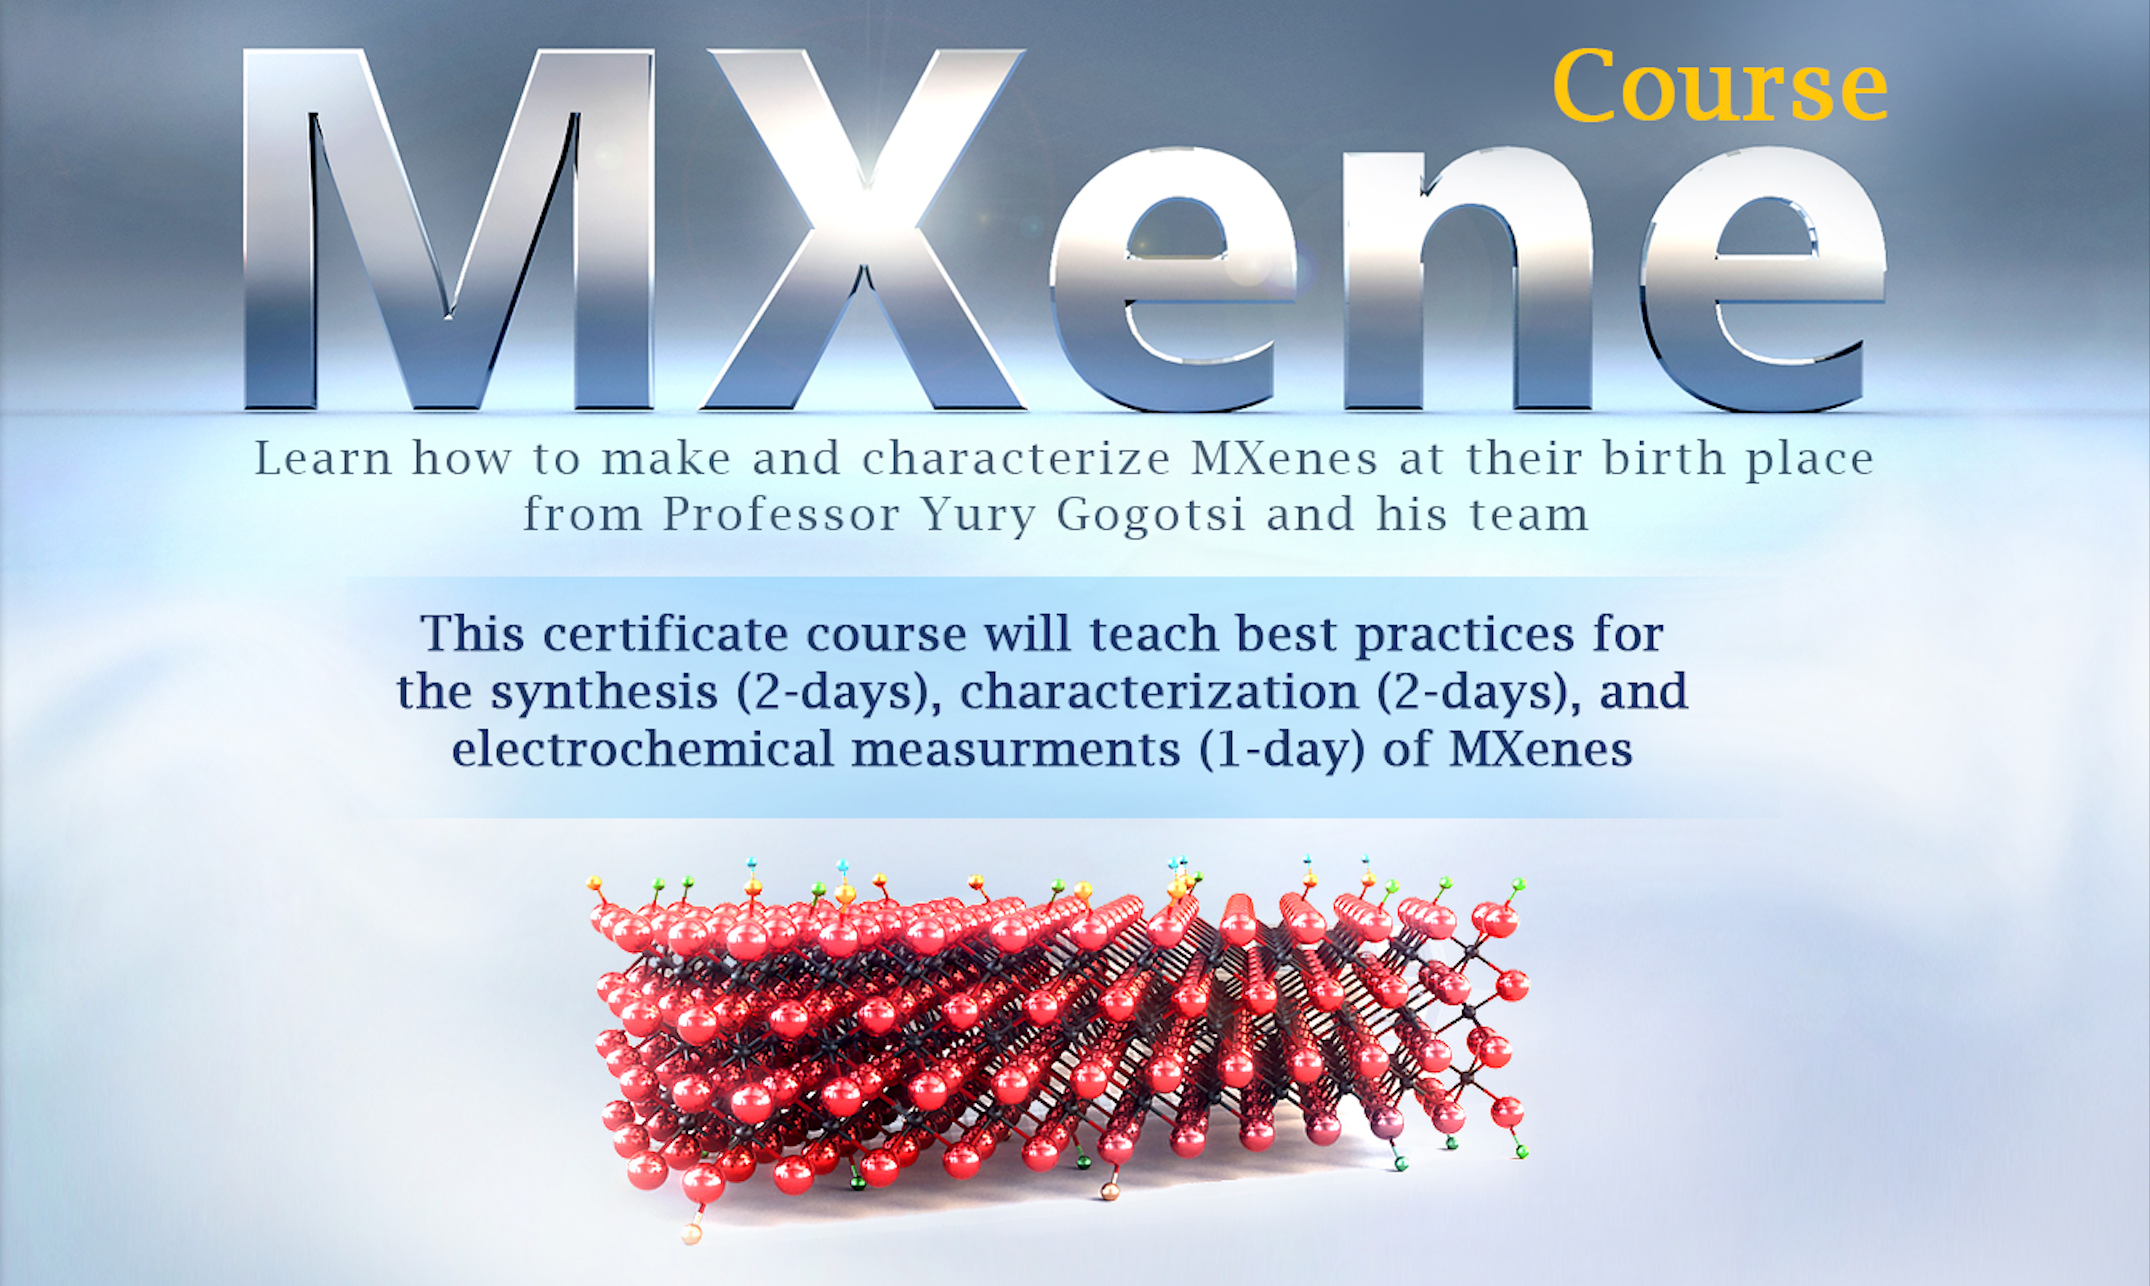 Register Now For The Upcoming MXene Certificate Course, August 2-6, 2021